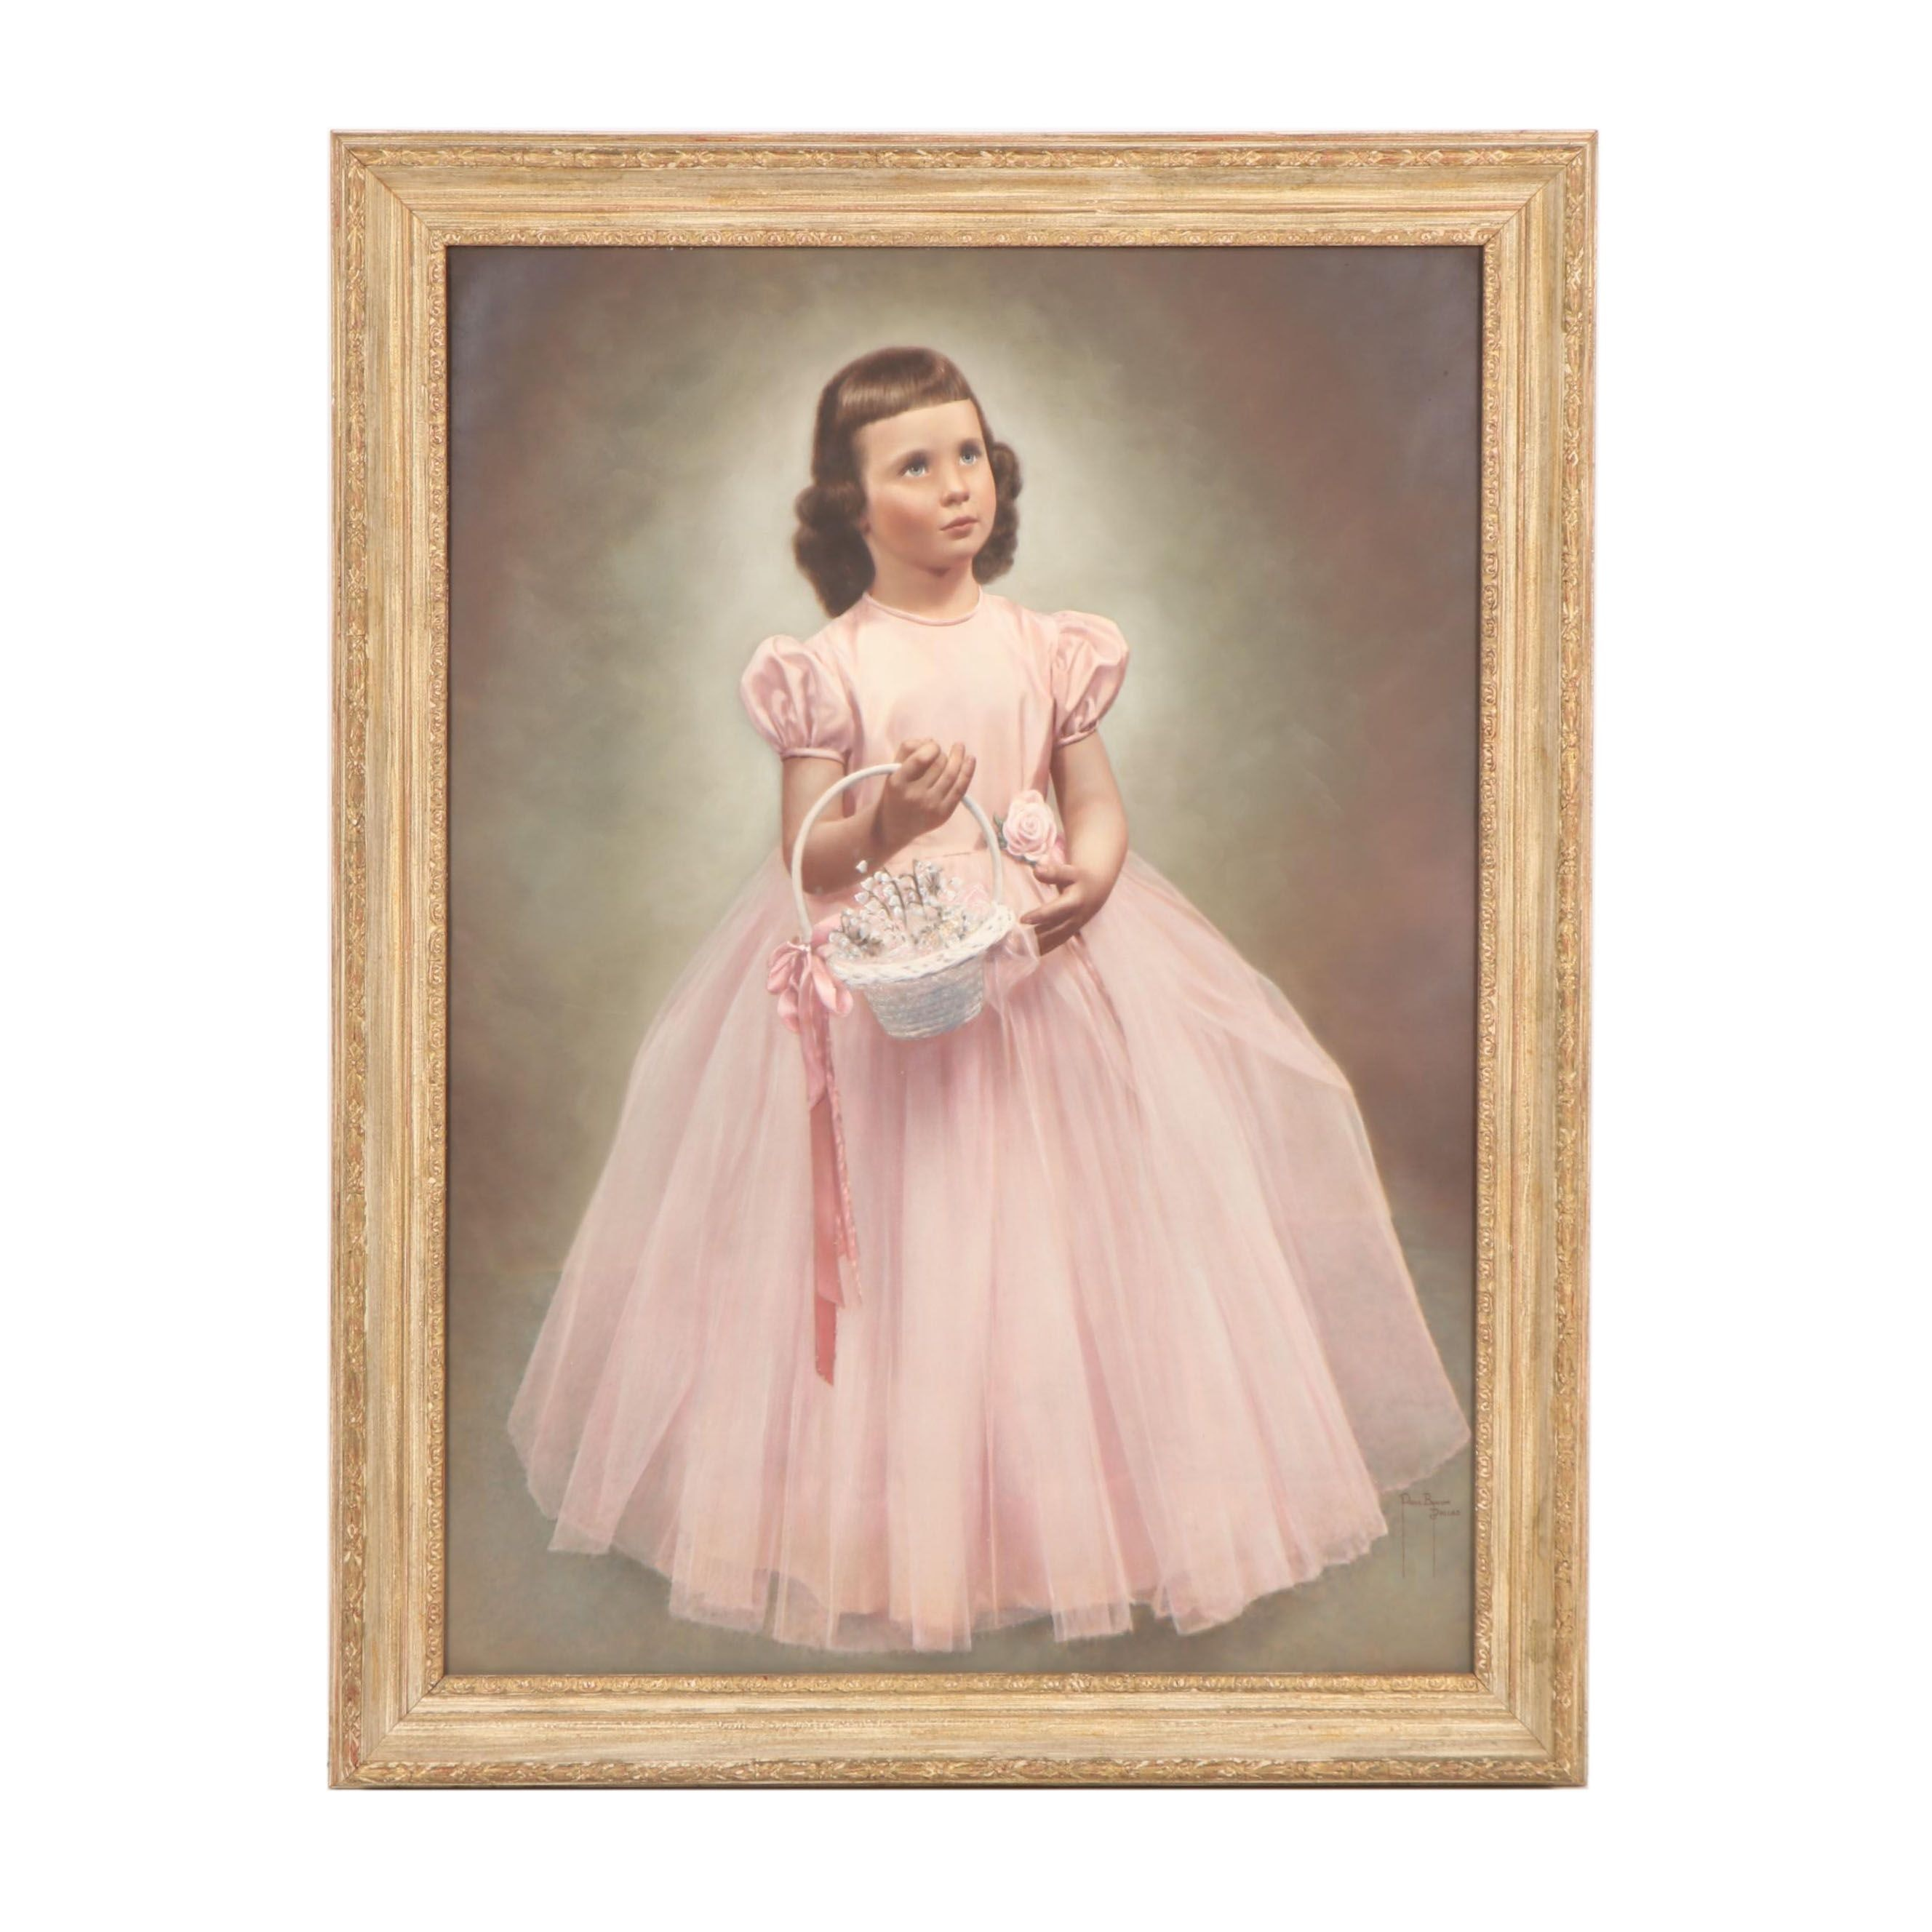 Paul Bynum Oil Portrait of a Young Girl